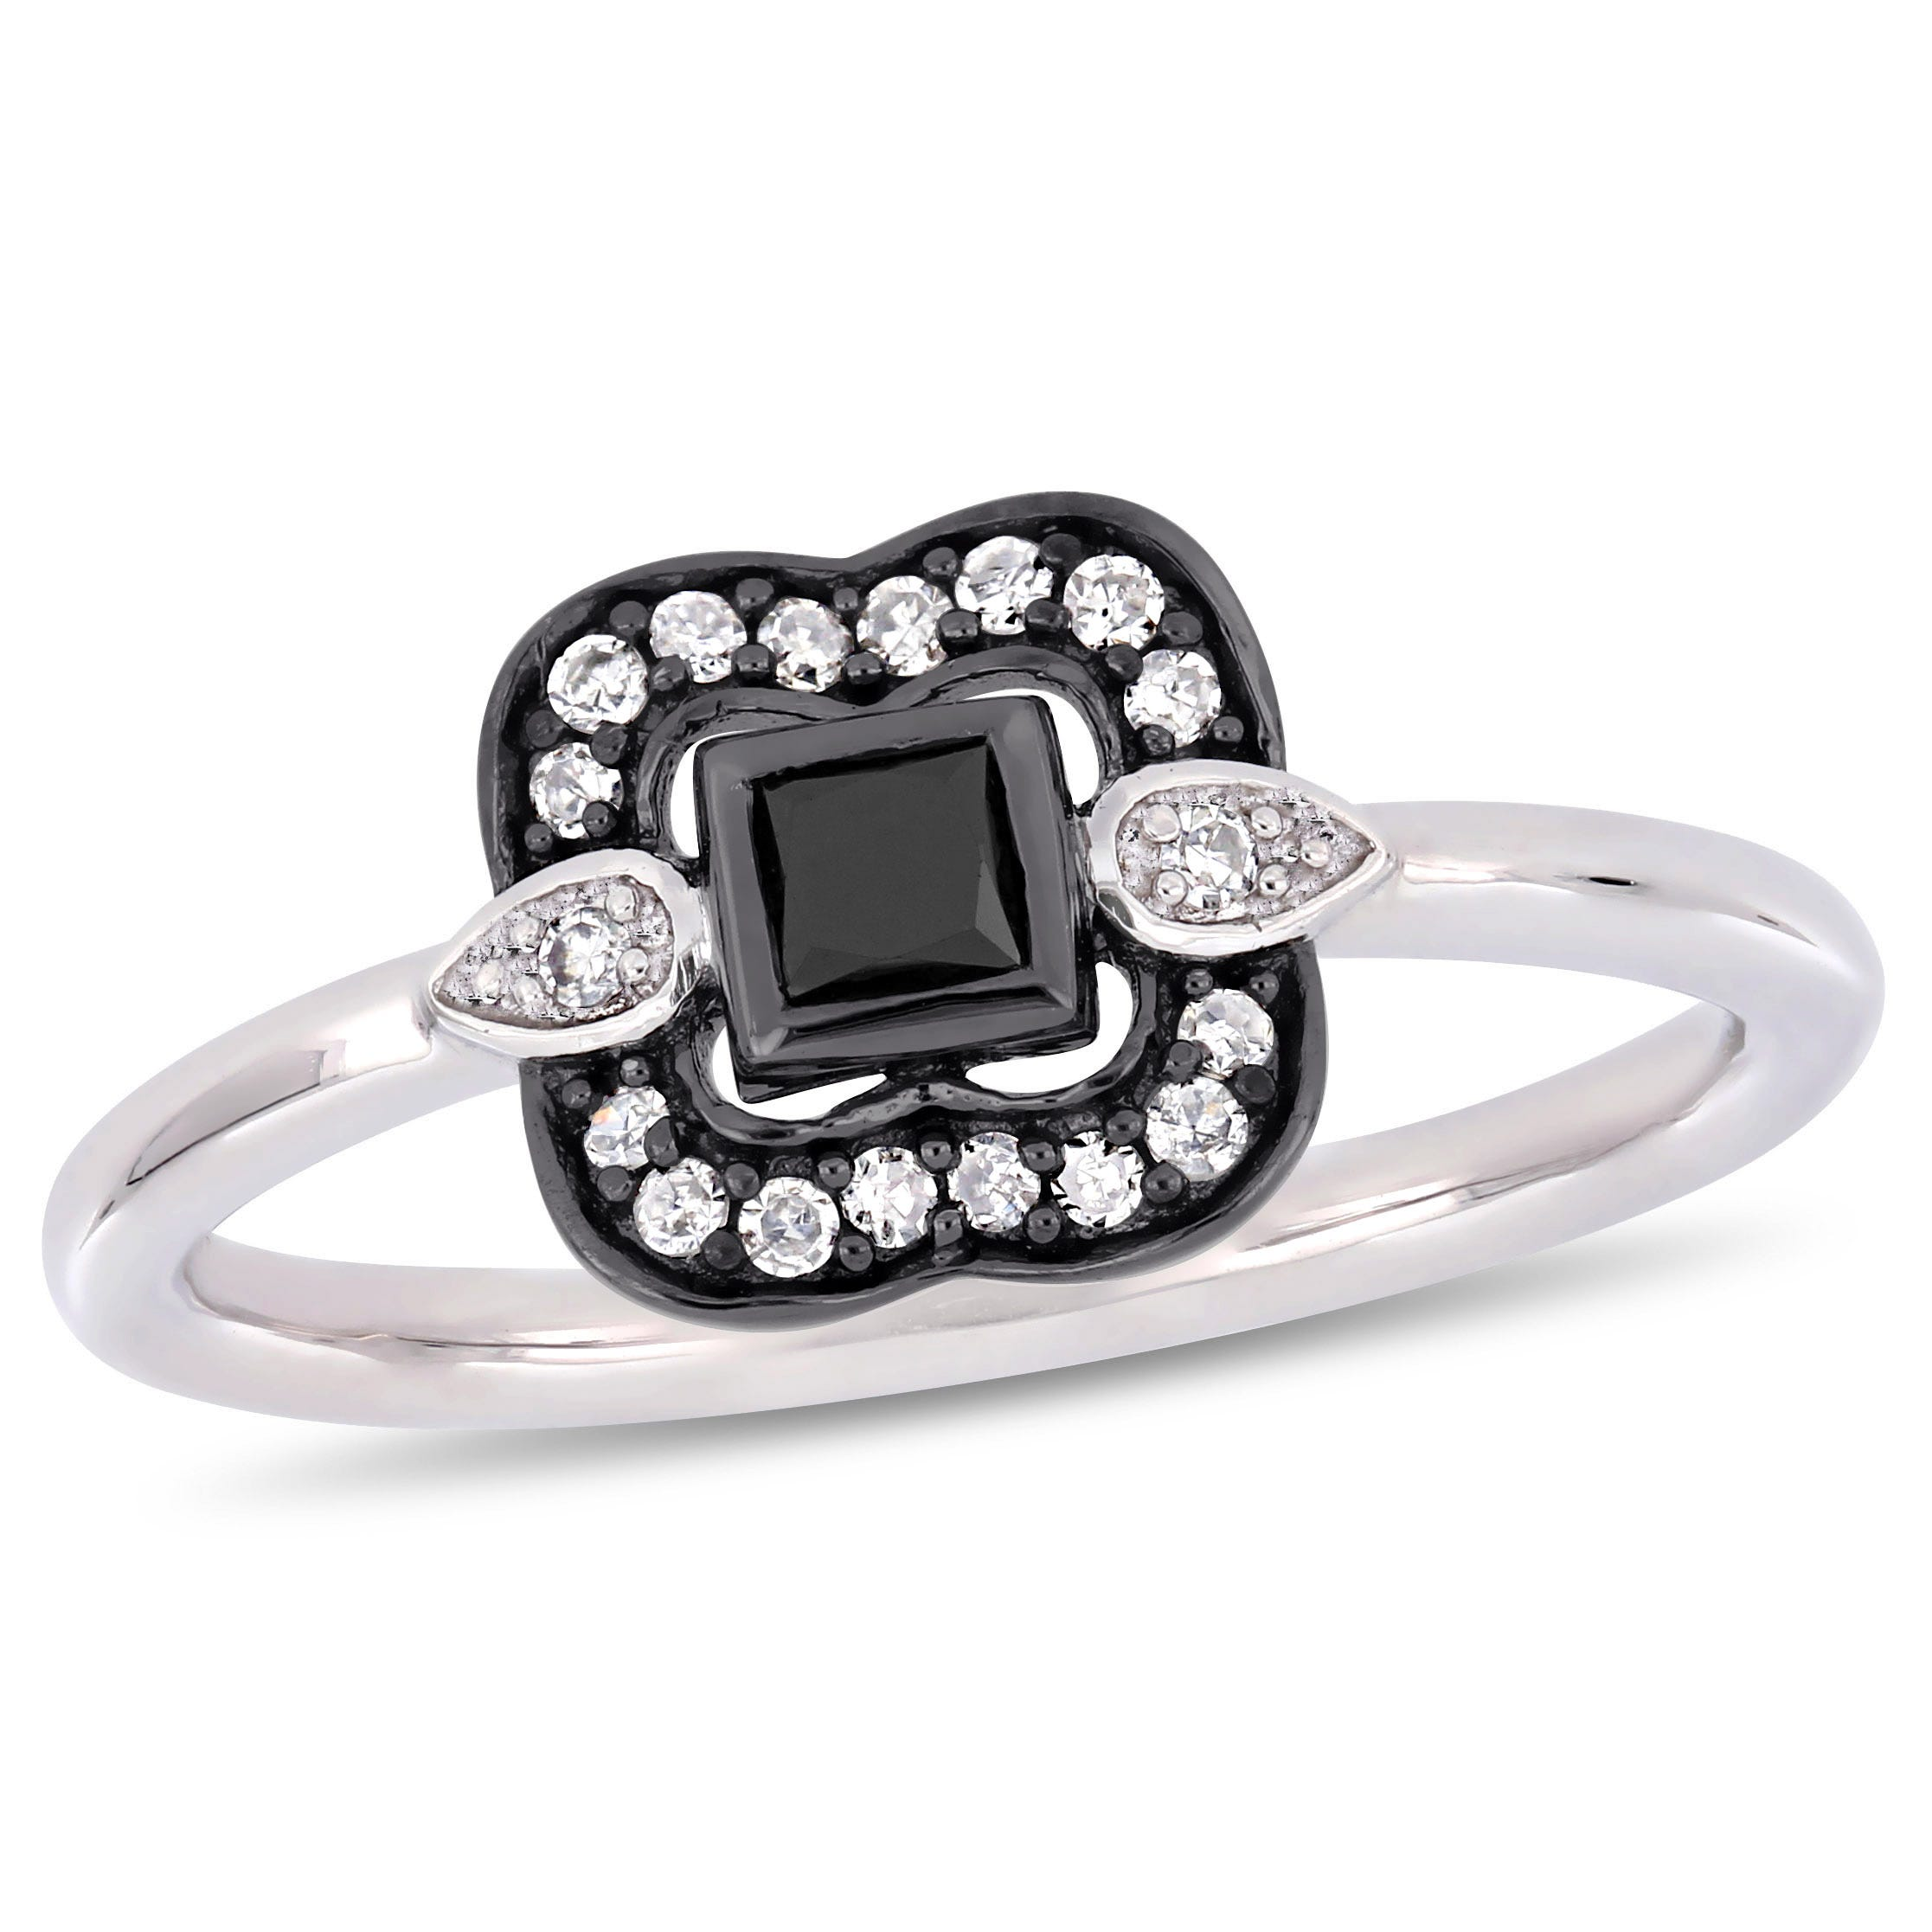 Everly 1/4ctw. Black & White Diamond Ring in 10k White Gold